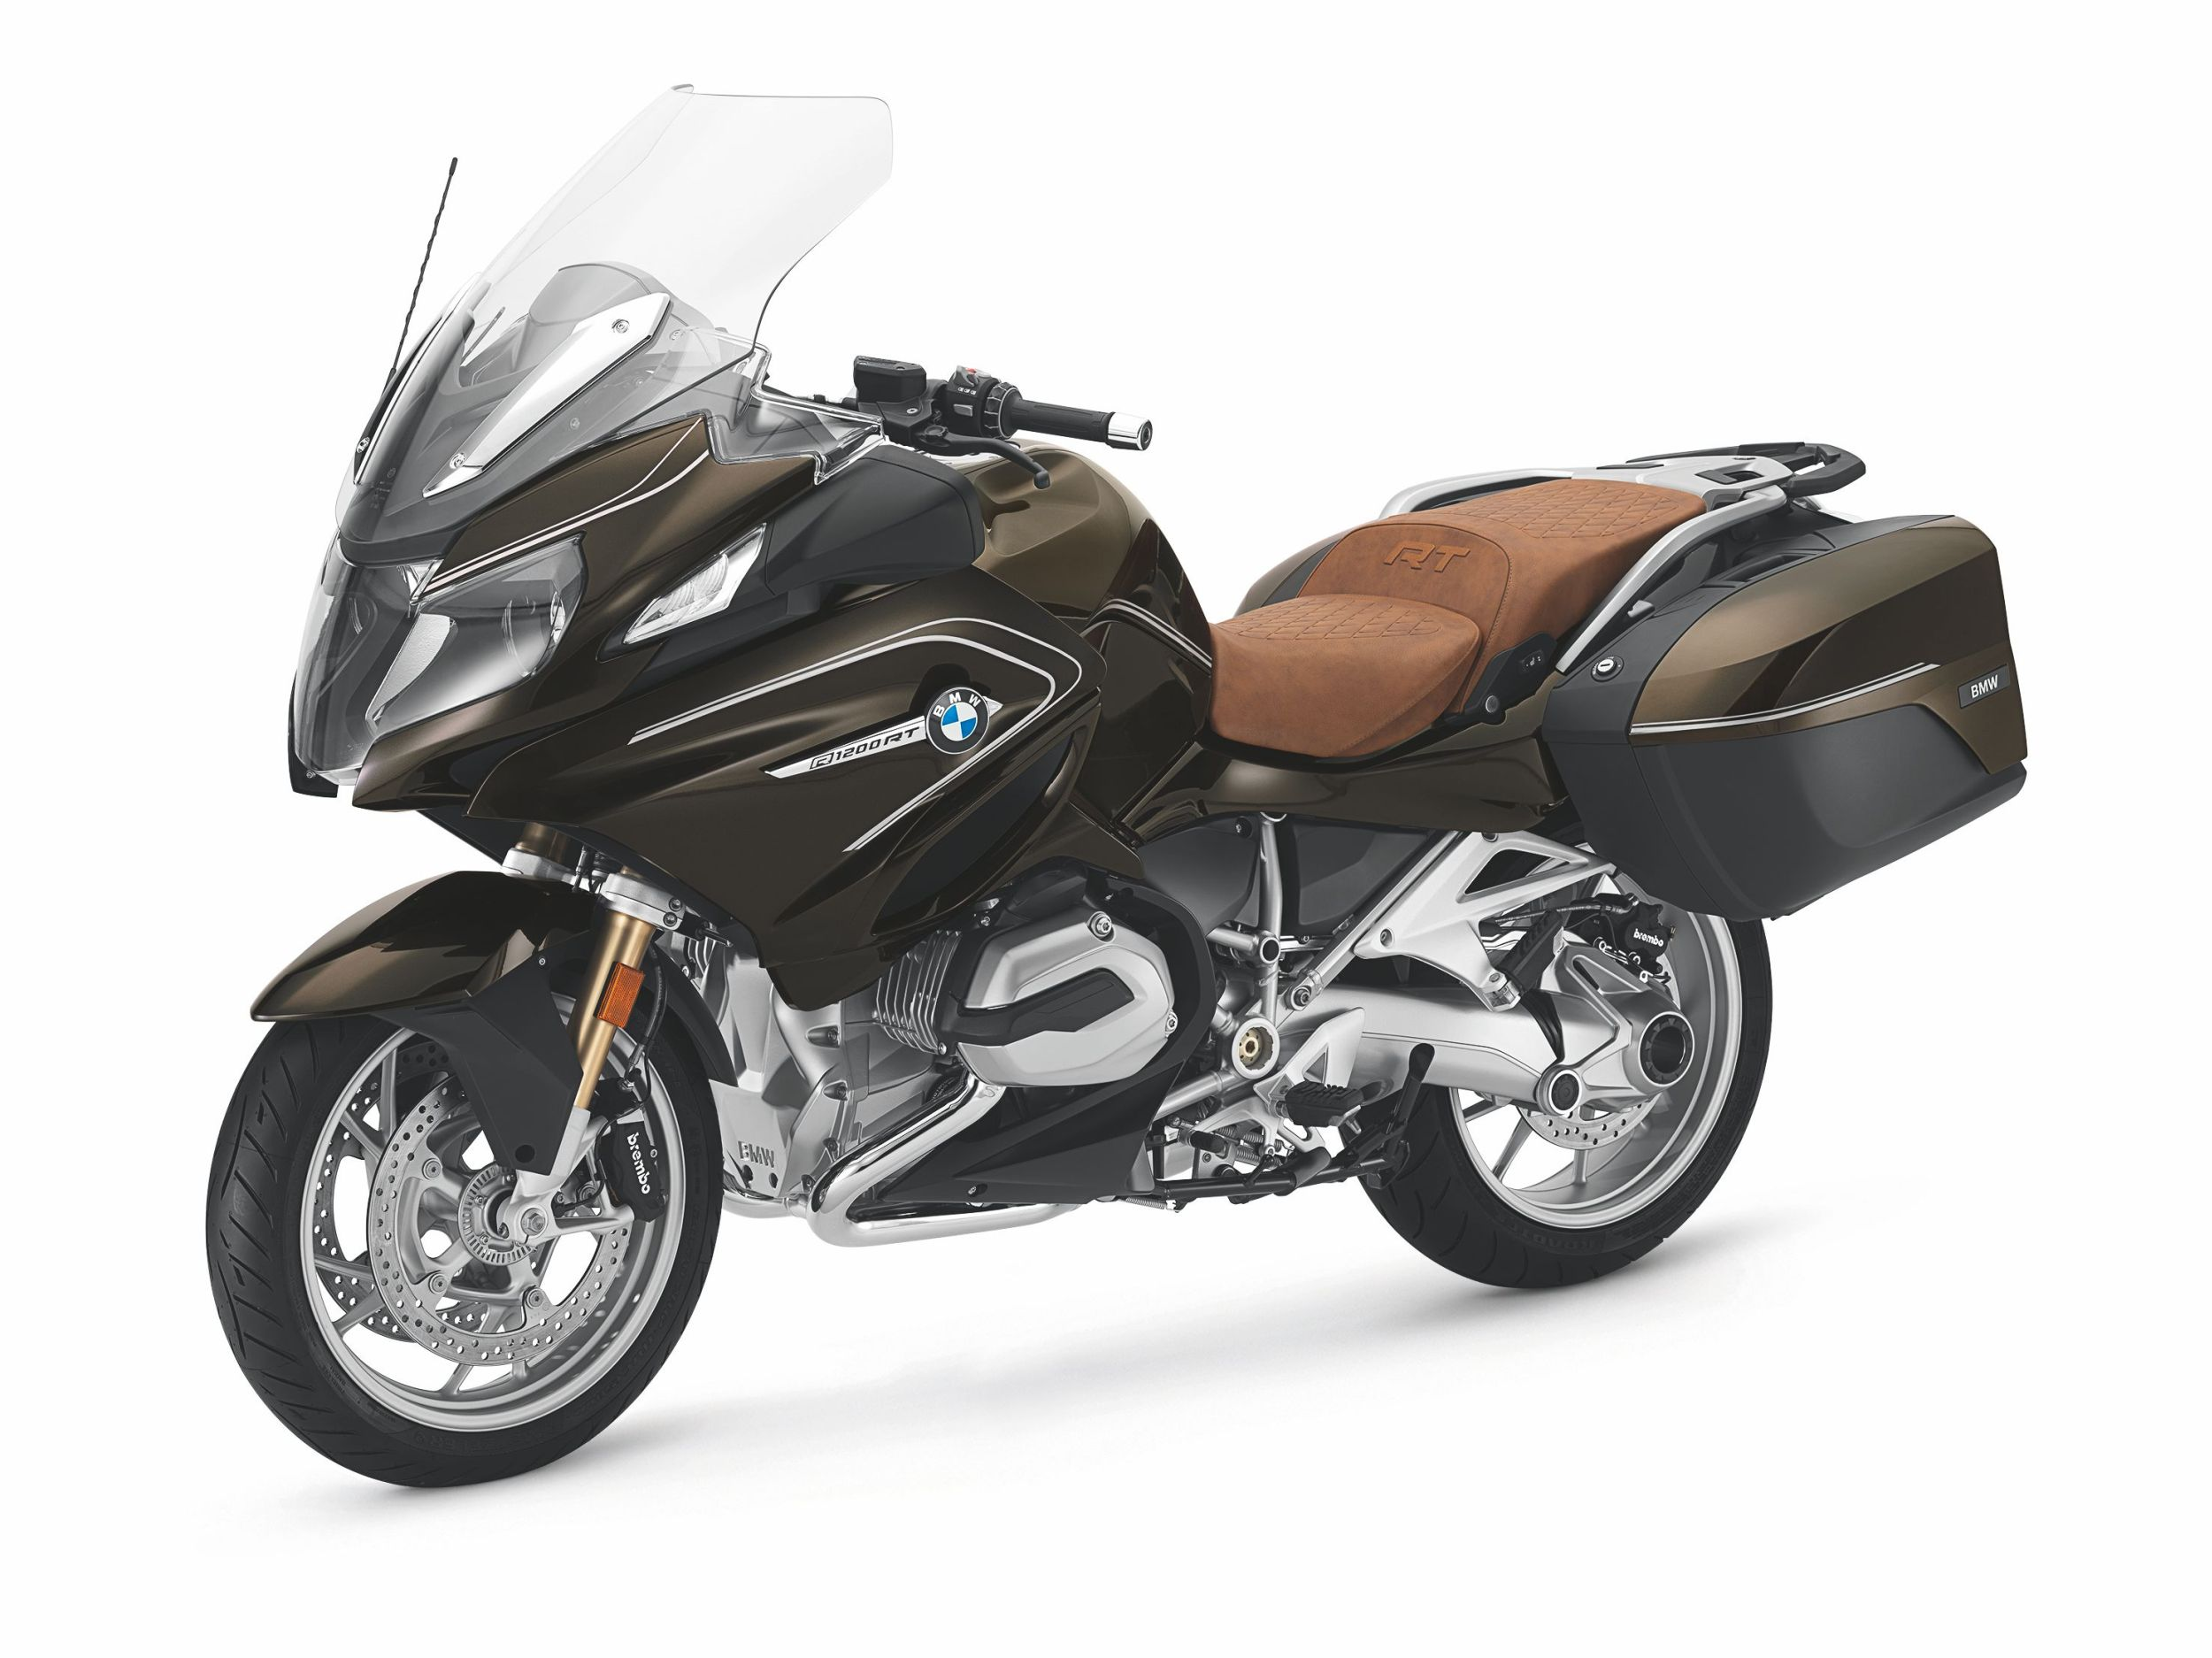 bmw r 1200 rt test gebrauchte bilder technische daten. Black Bedroom Furniture Sets. Home Design Ideas